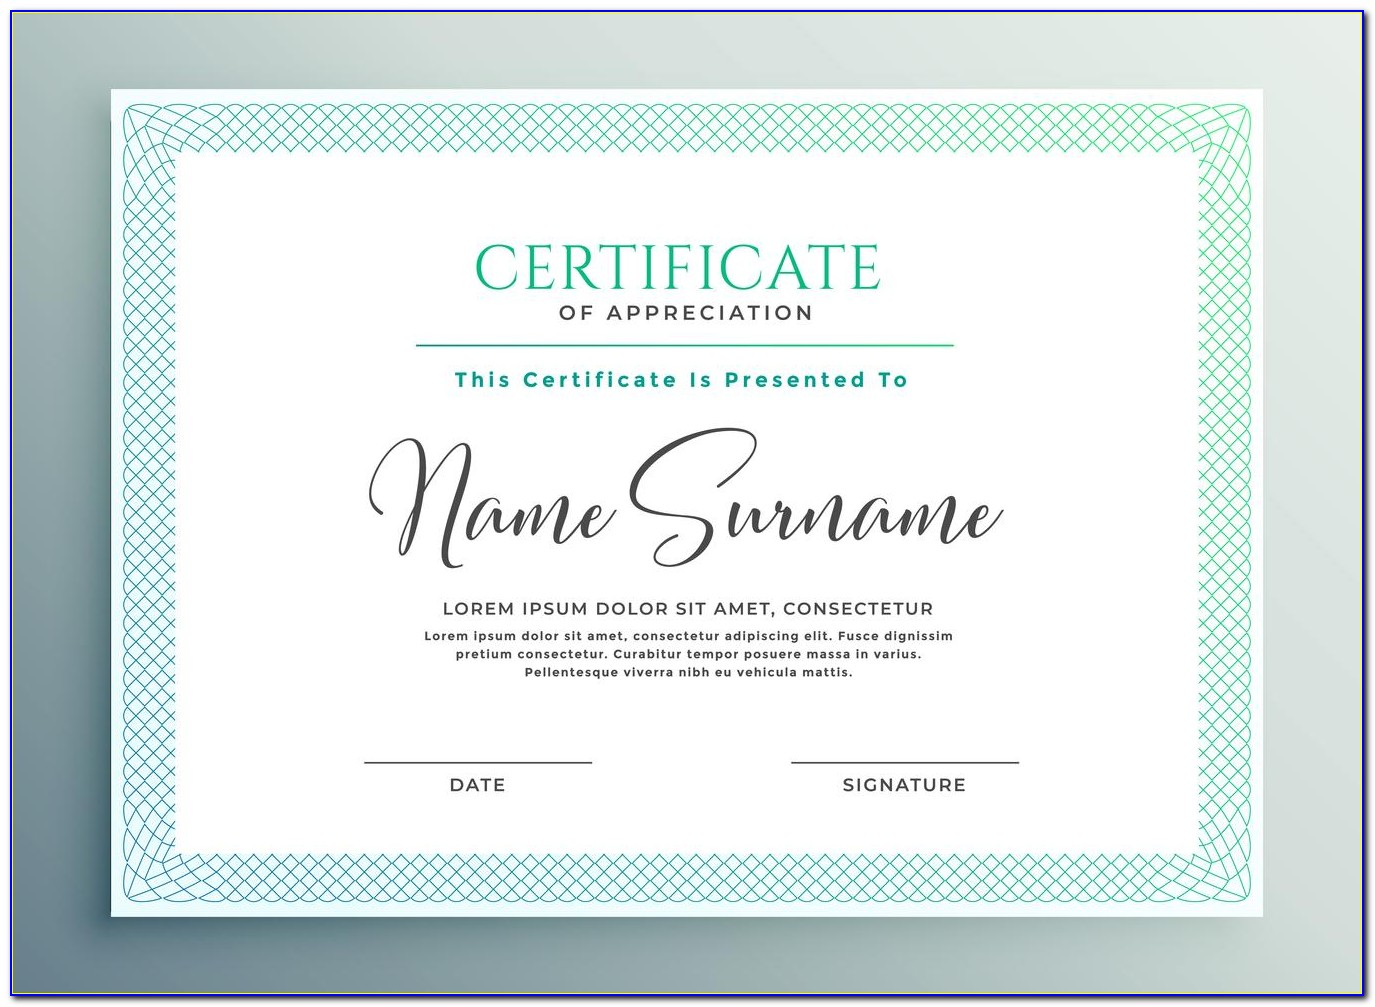 Certificate Of Appreciation Samples